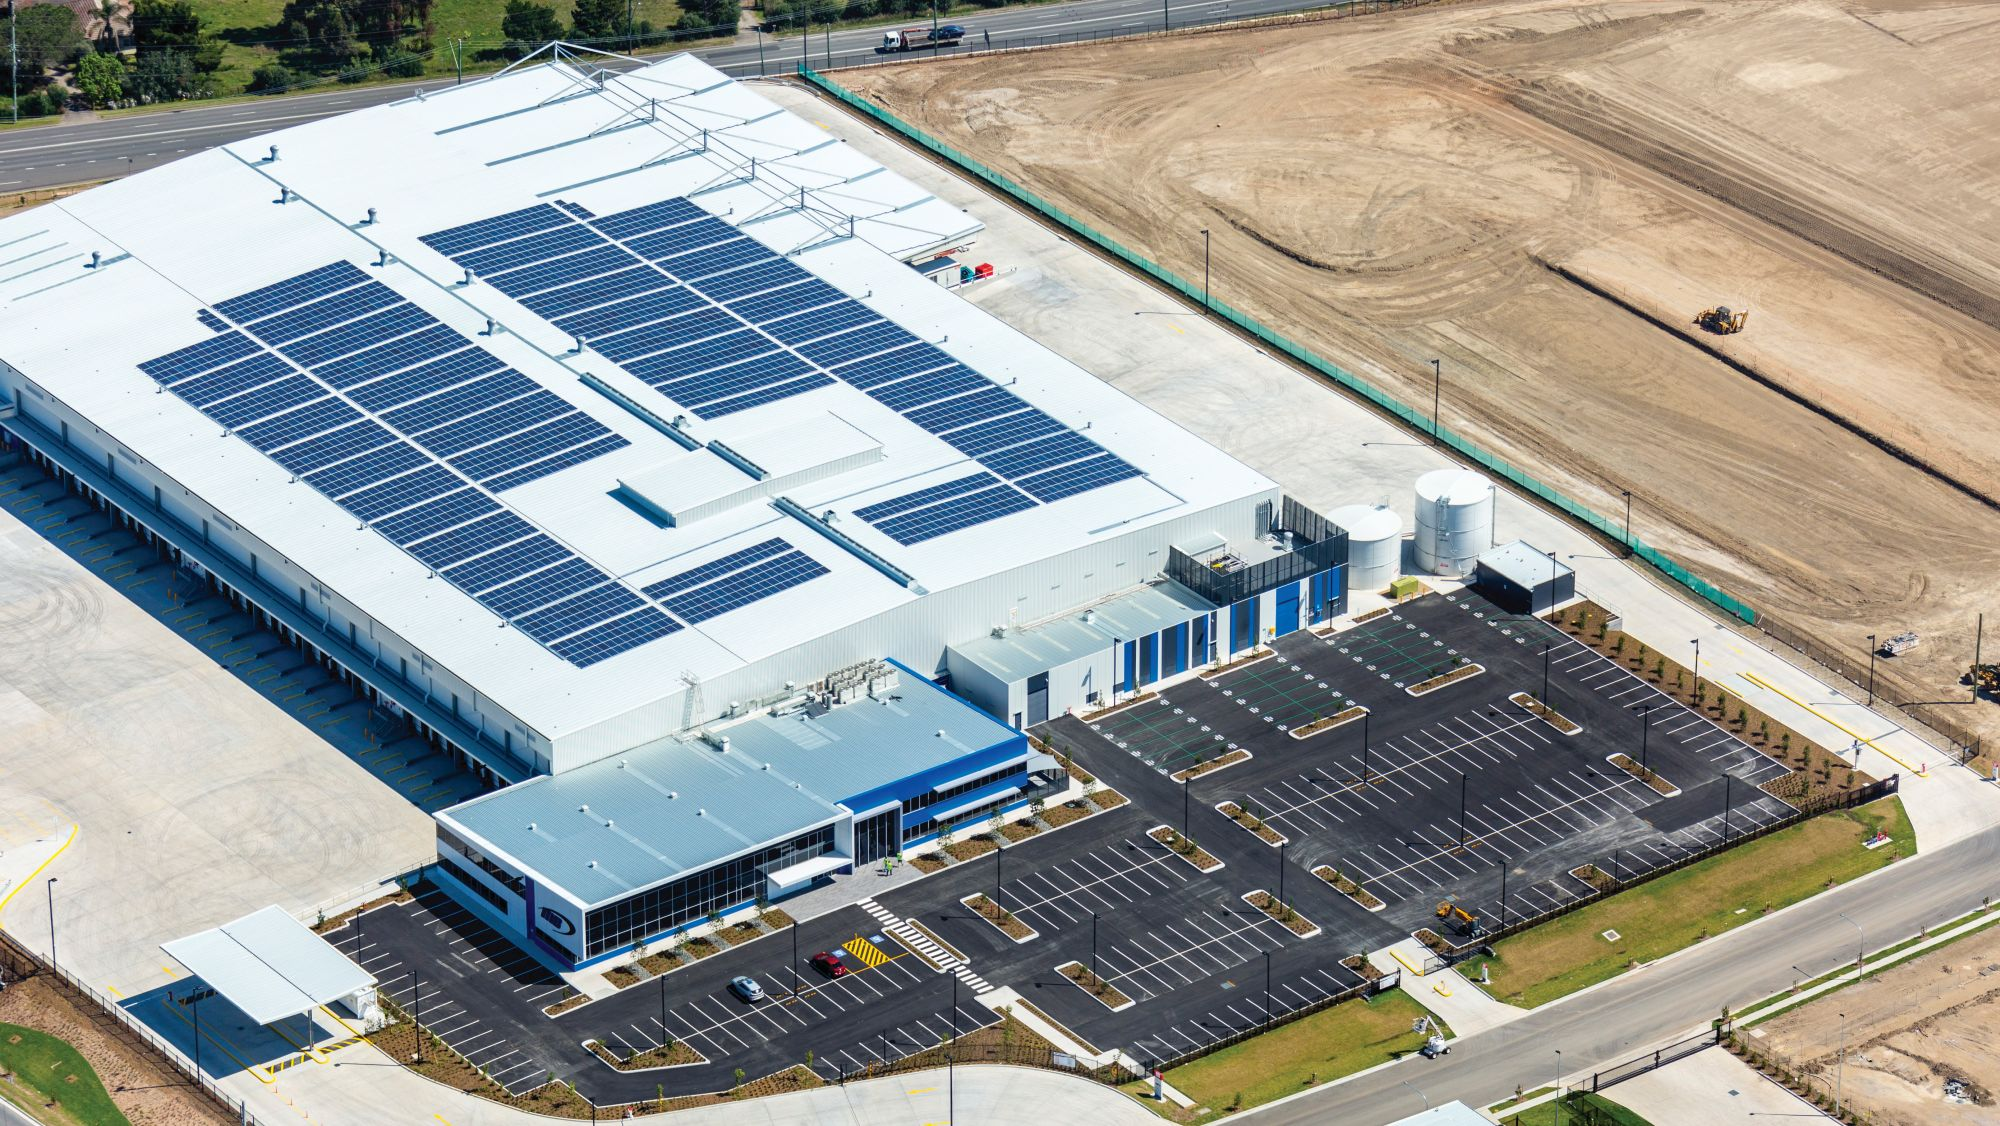 Horlsey Drive Business Park, Martin Bower Facility, New South Wales, Frasers Property Australia